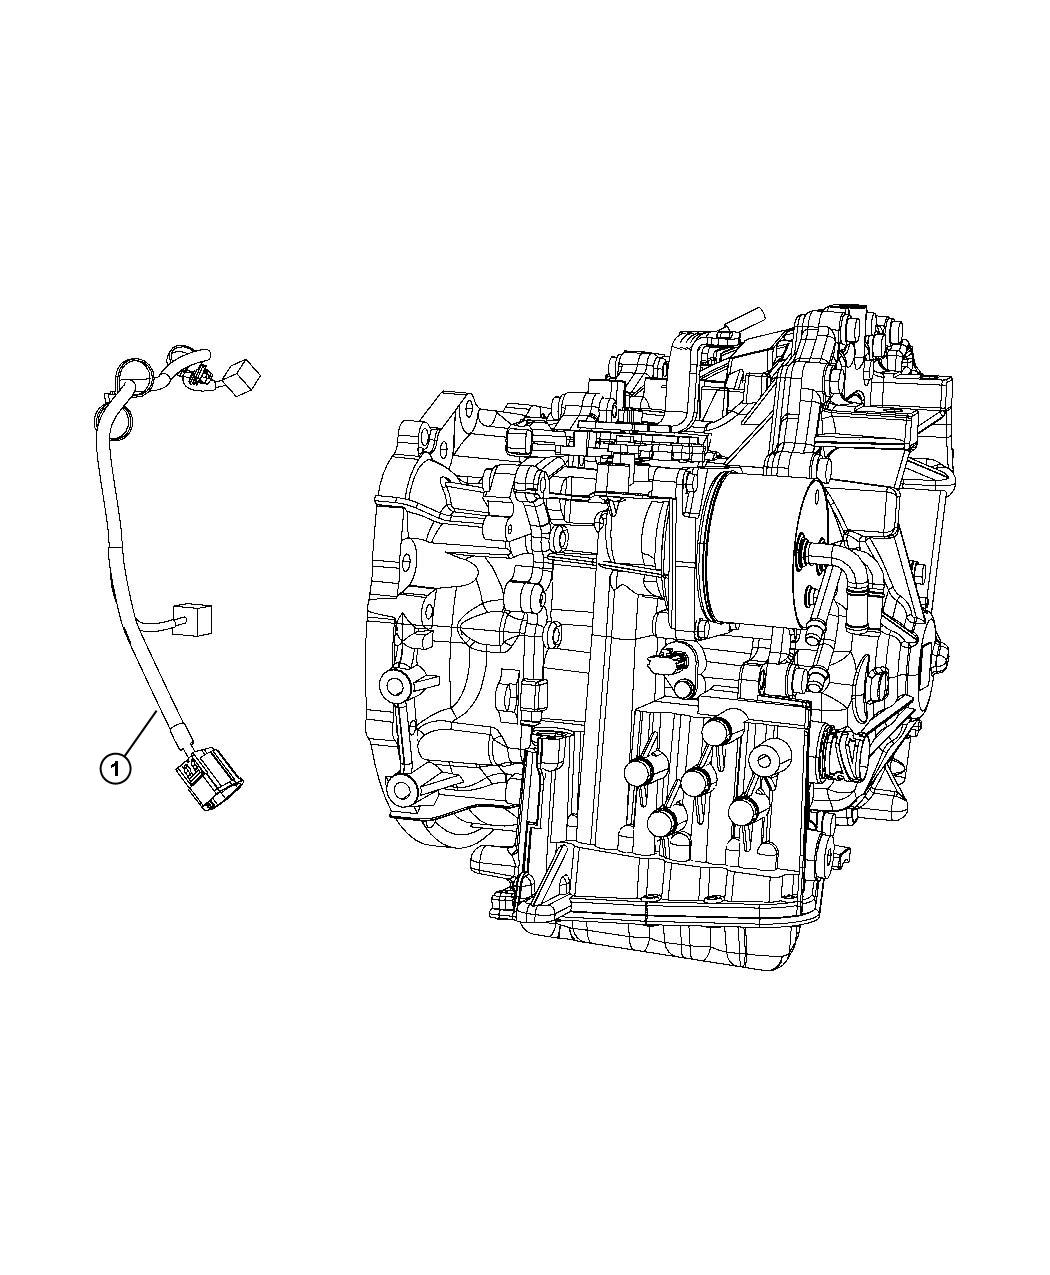 [DIAGRAM] Jeep Patriot Wiring Diagram For 2012 FULL